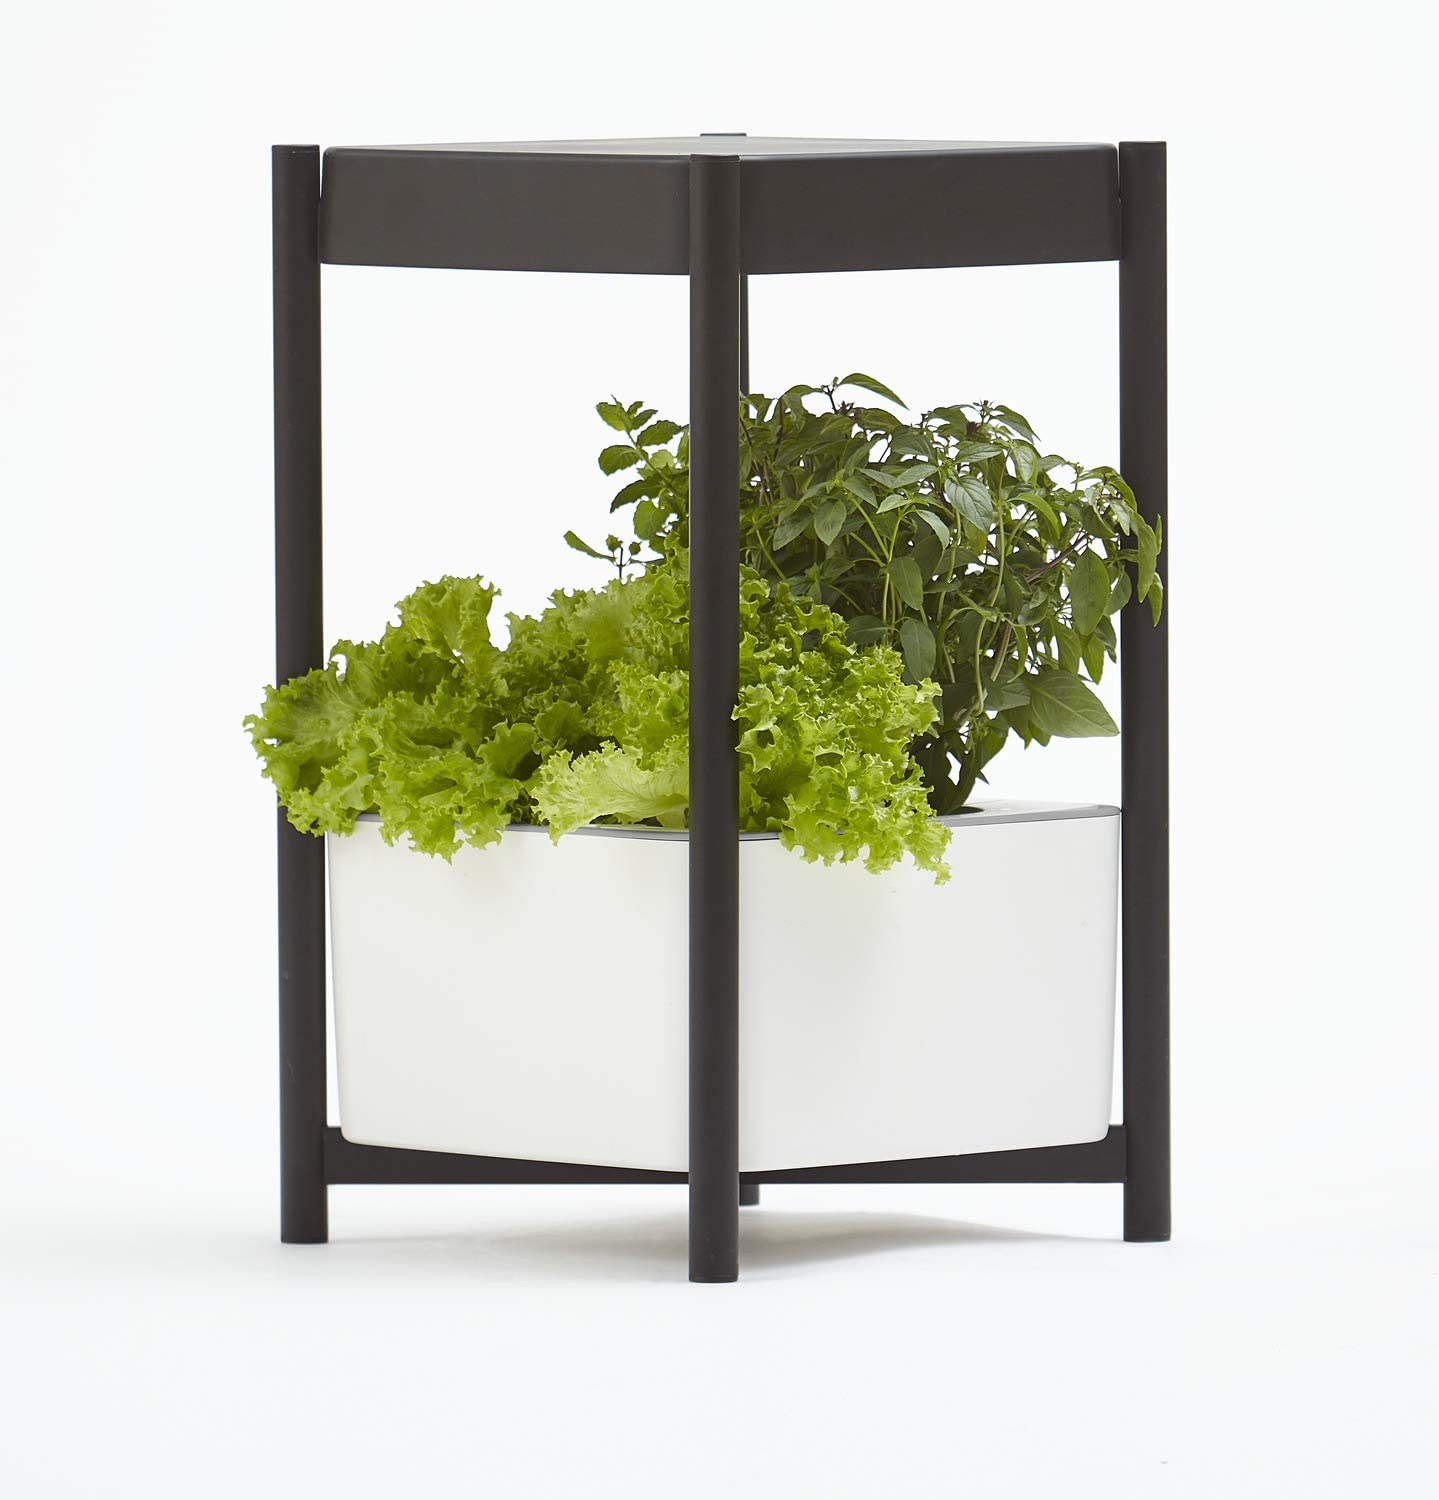 Miracle-Gro Twelve Indoor Growing System, Side Table with LED Grow Light for Year Round Gardening, Planter for Leafy Greens, Herbs and Flowers